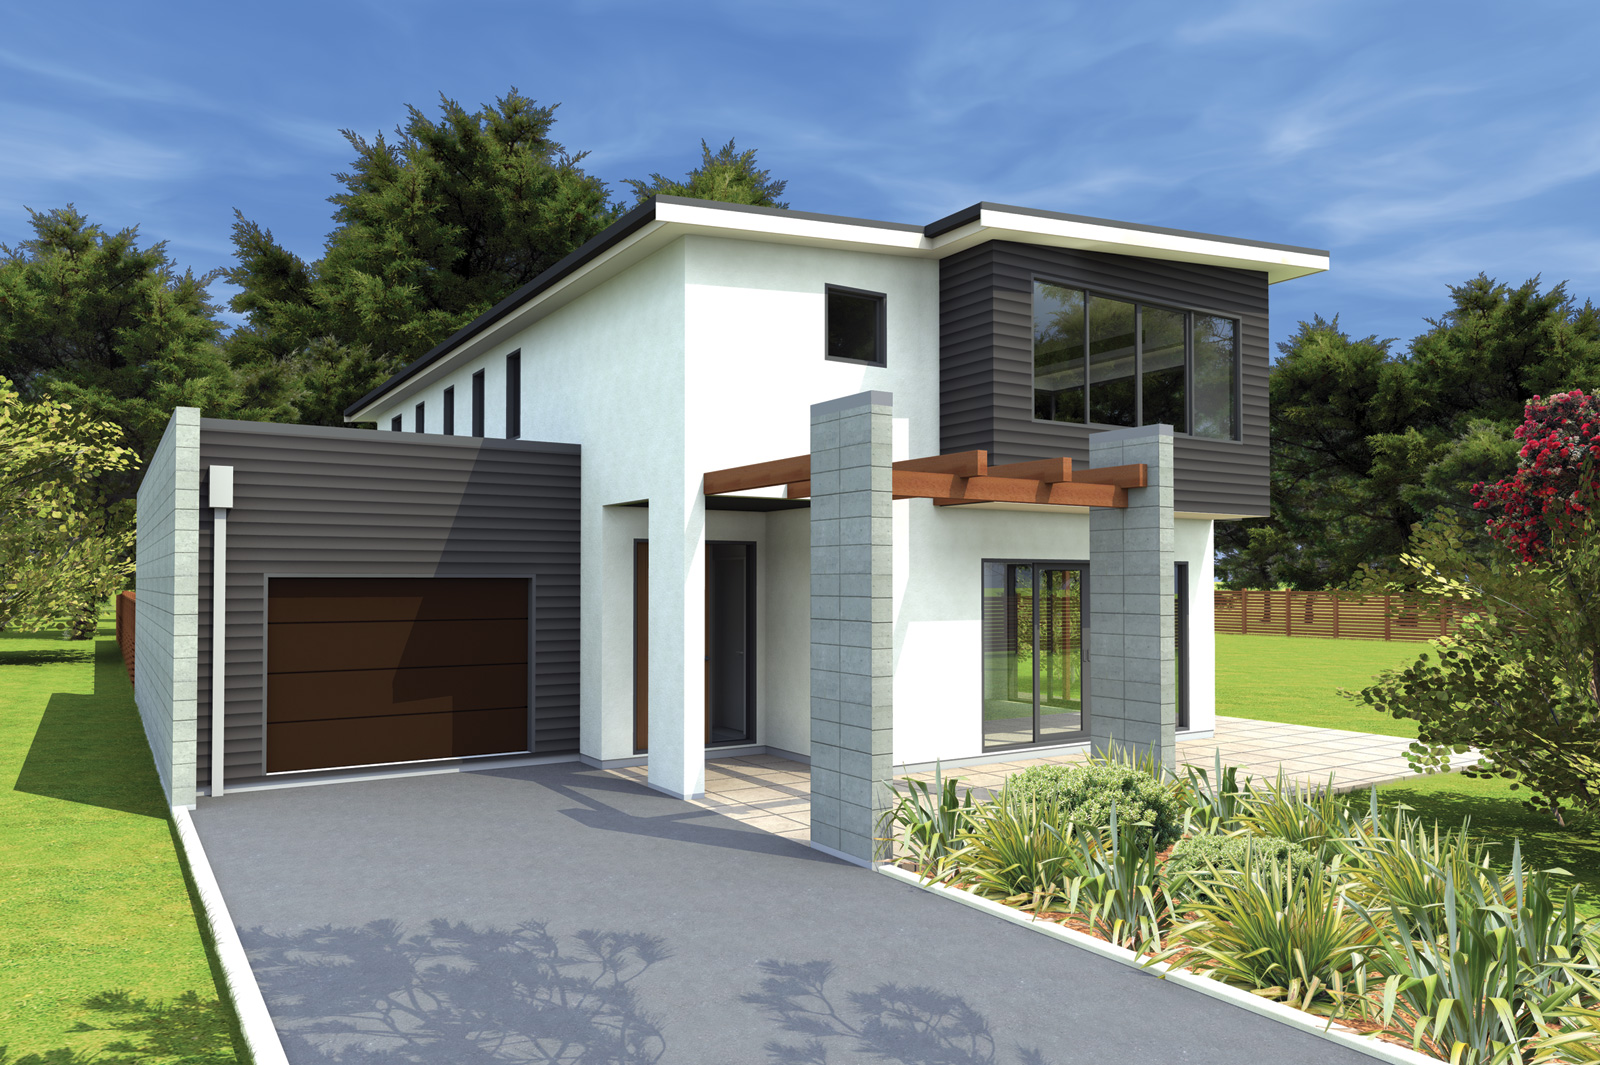 New home designs latest new modern homes designs new for New home design ideas